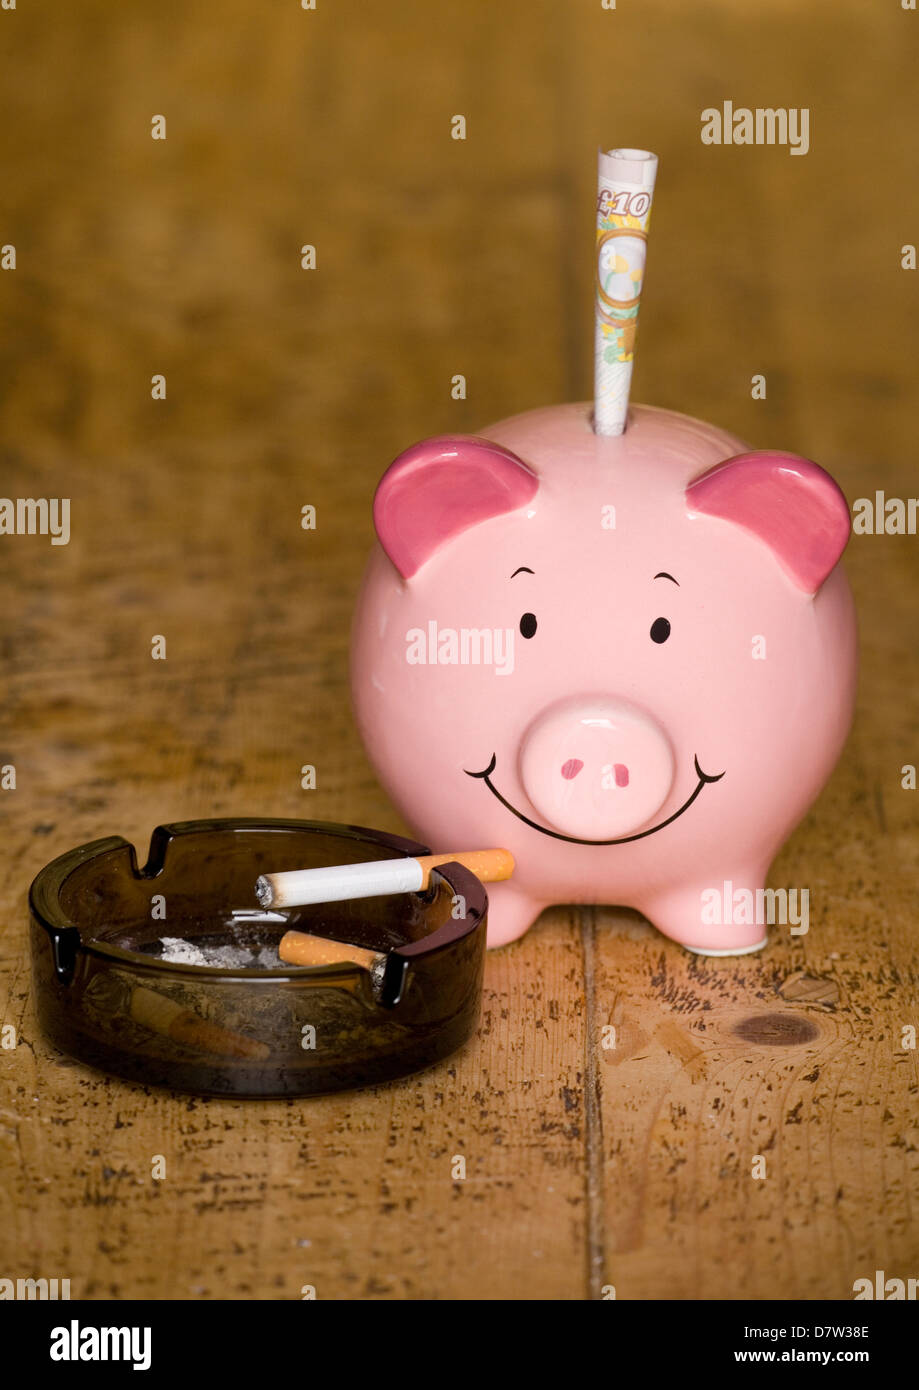 piggy bank and cigarettes on a wooden table - Stock Image